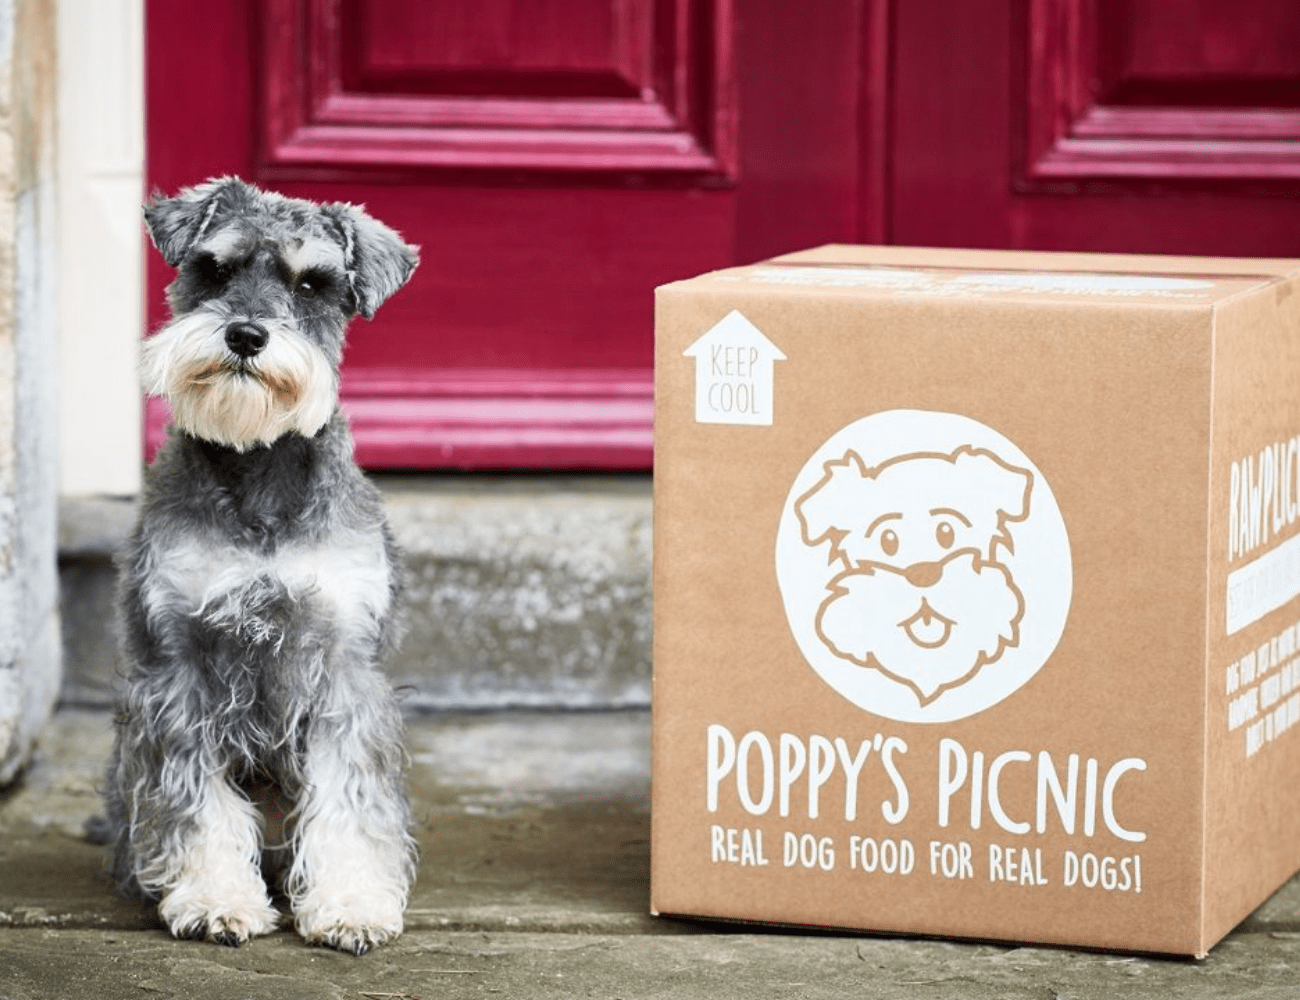 How Startup, Poppy's Picnic, Use Reviews To Supercharge Their Growth